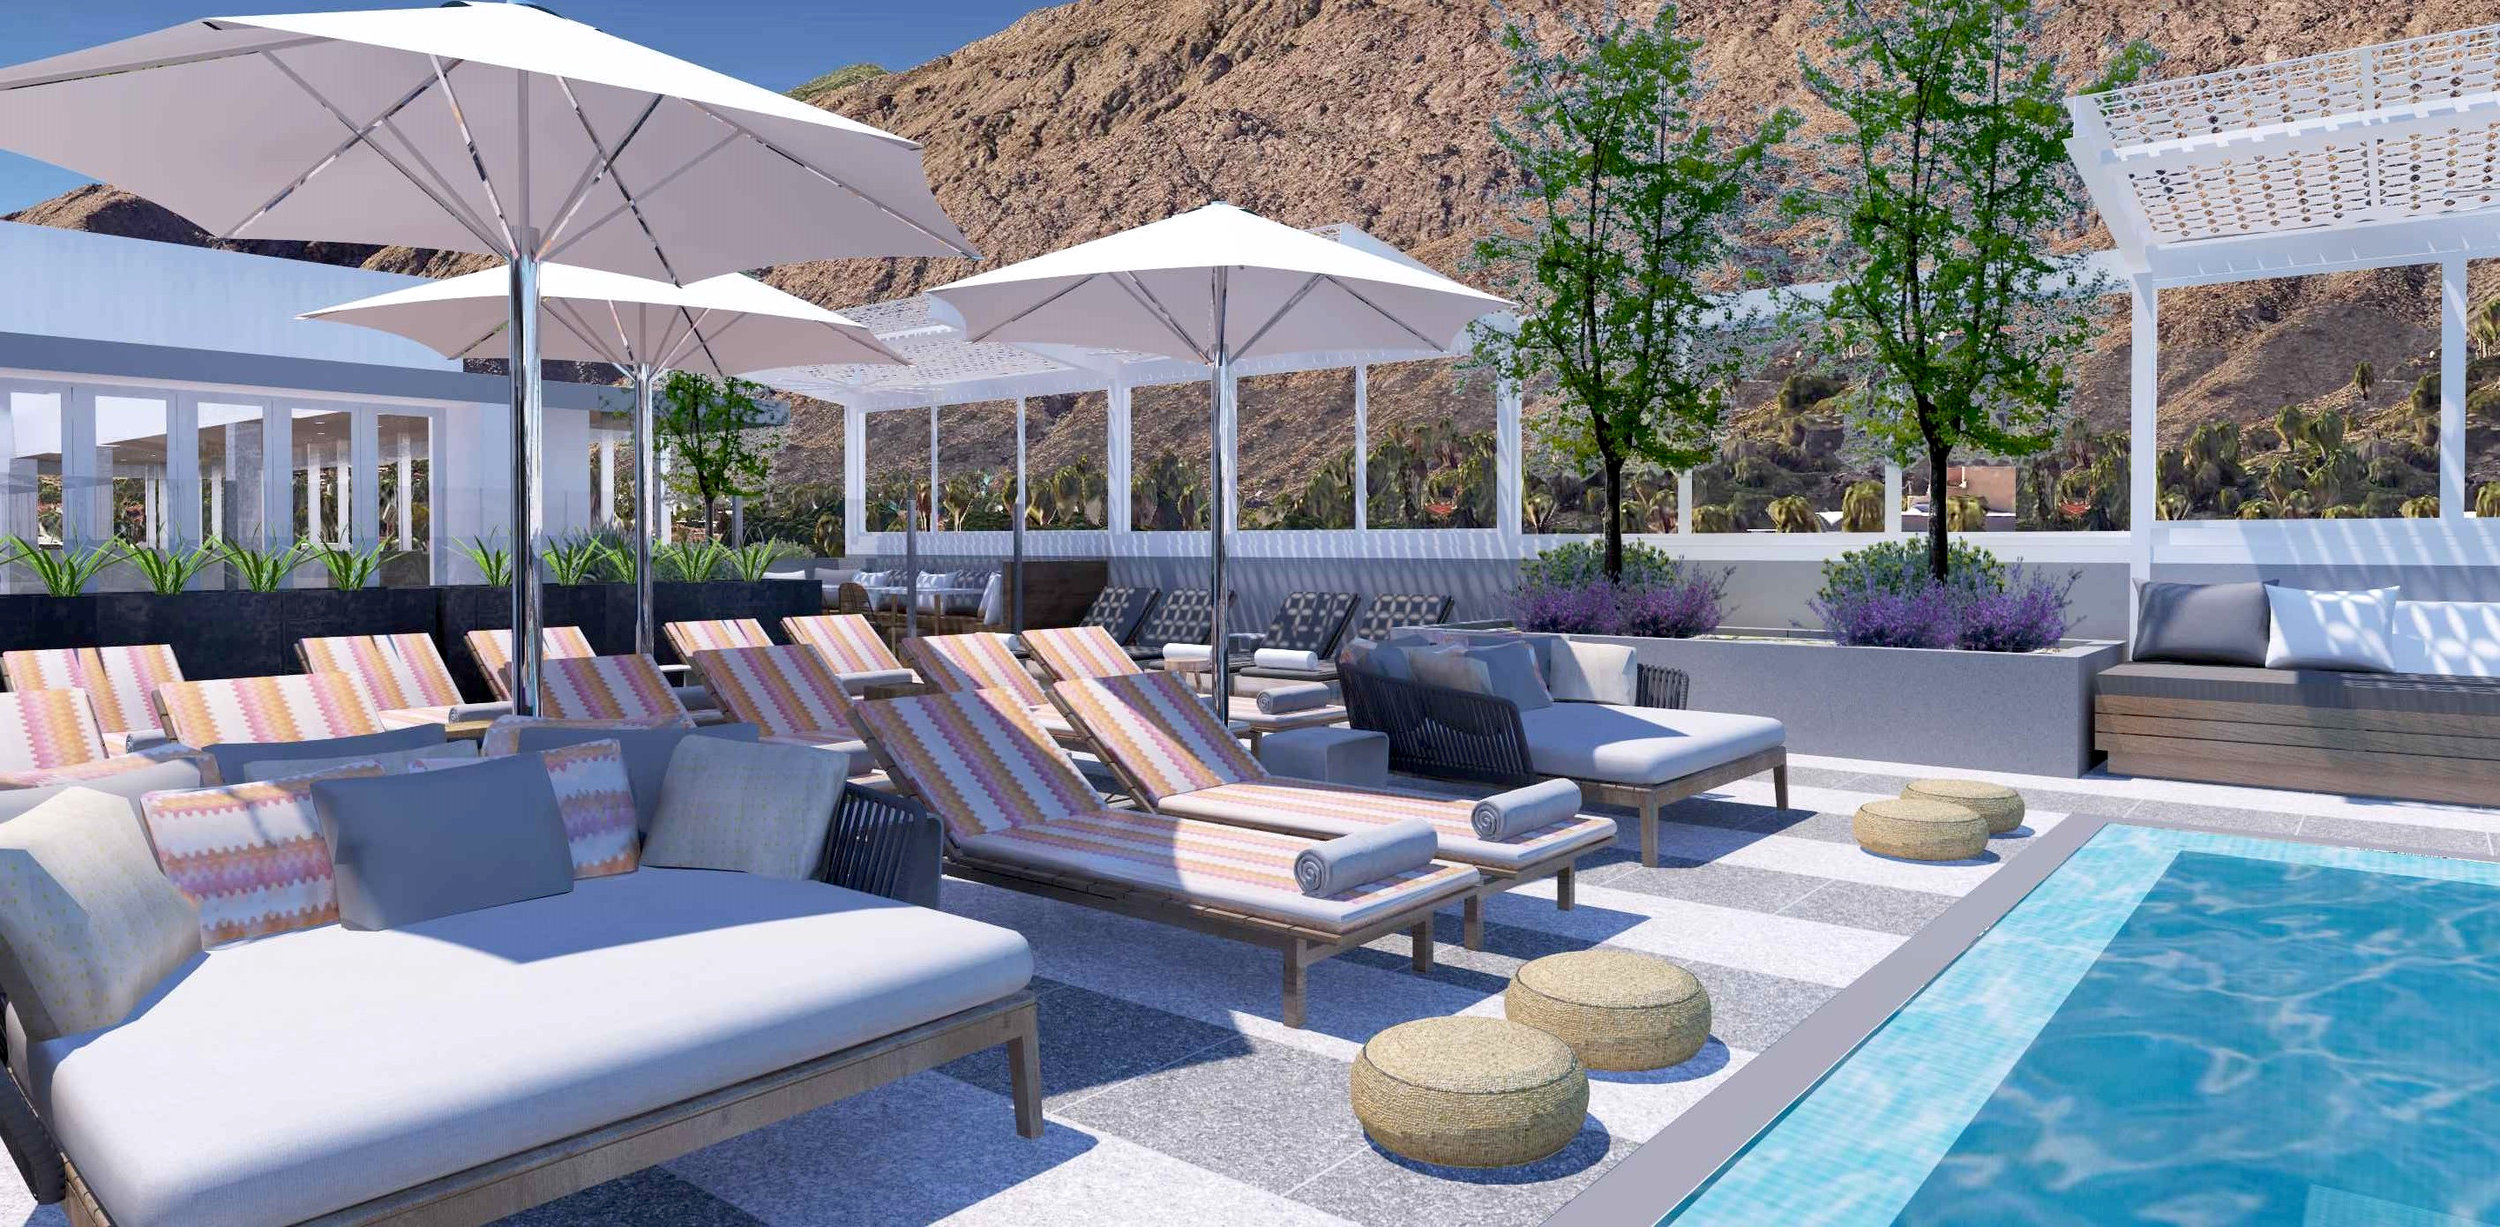 Rooftop pool Rowan Palm Springs